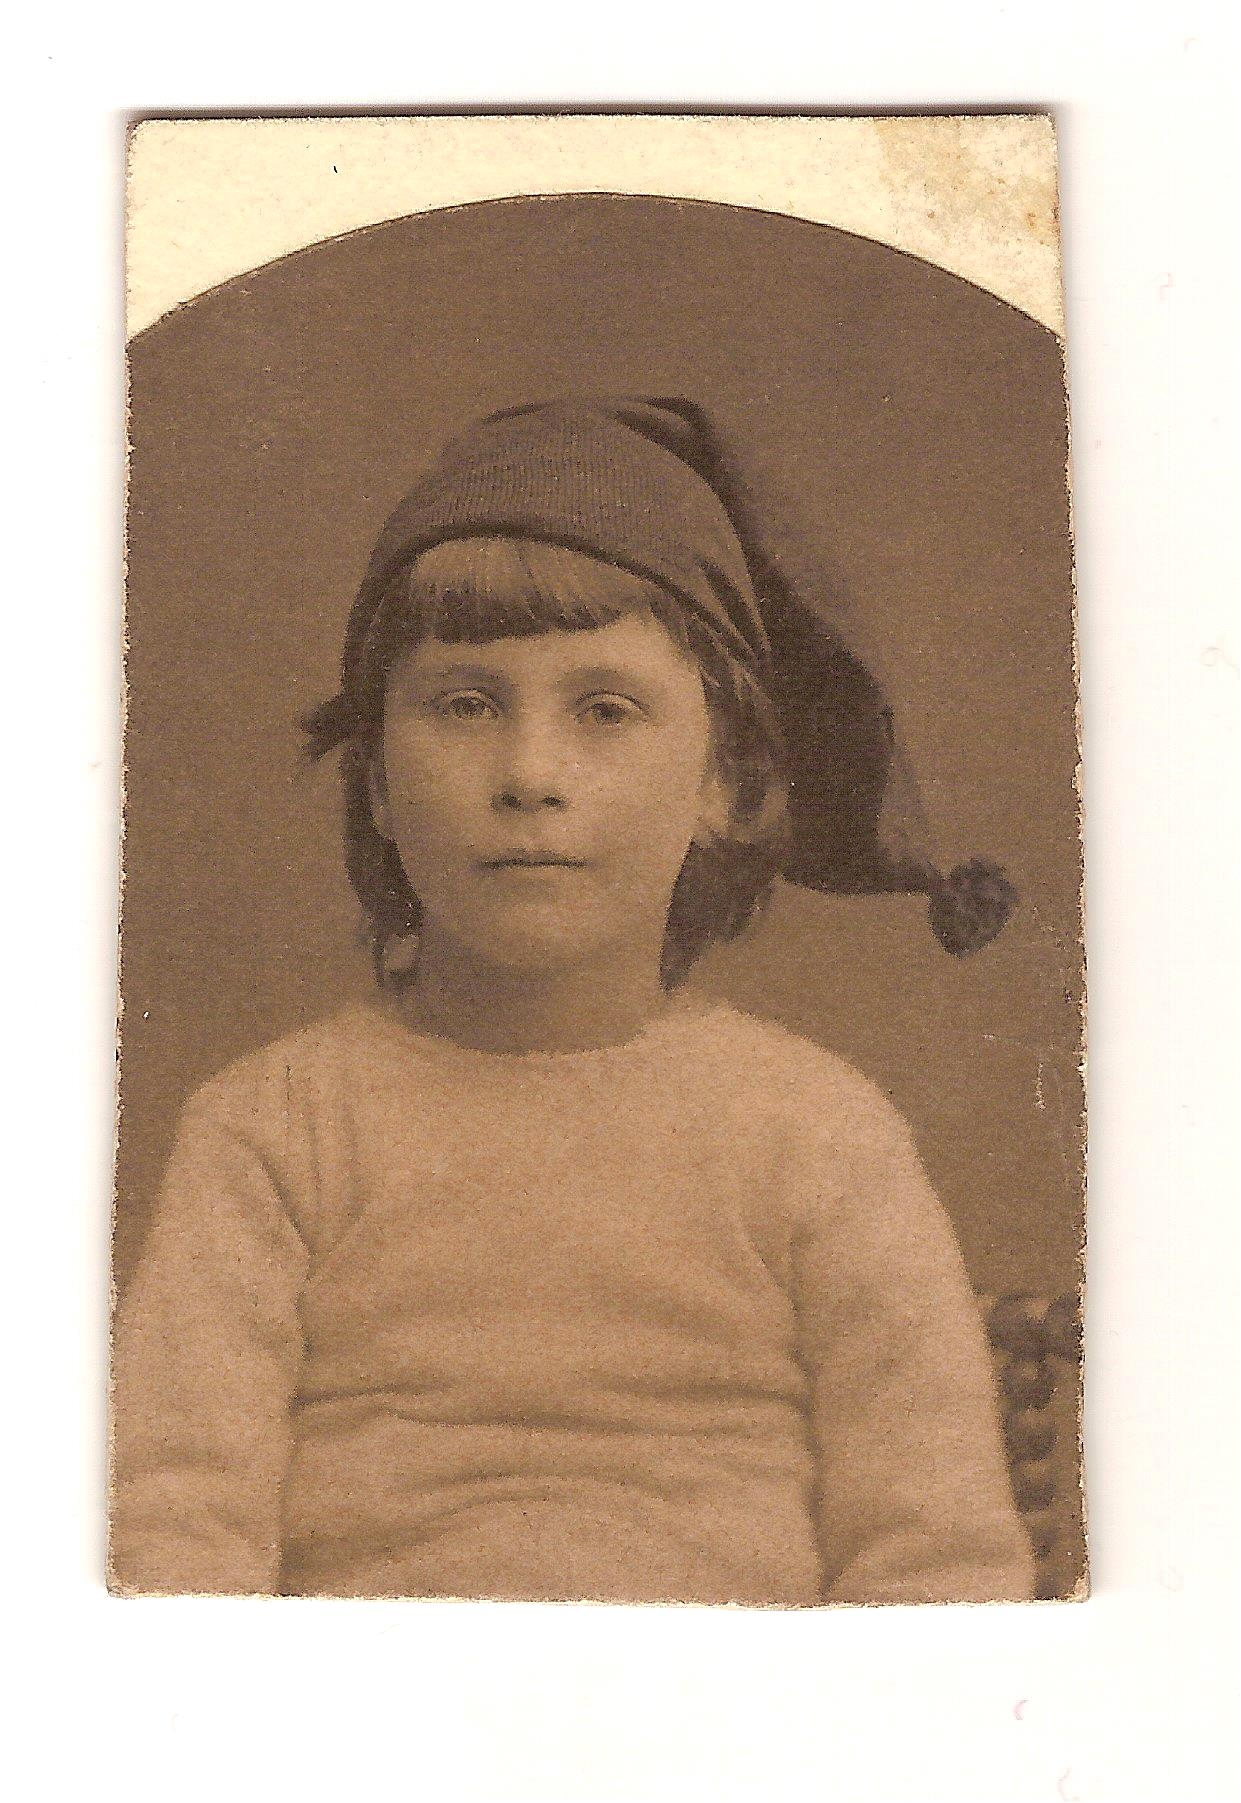 Norman O'Neill aged 7 years